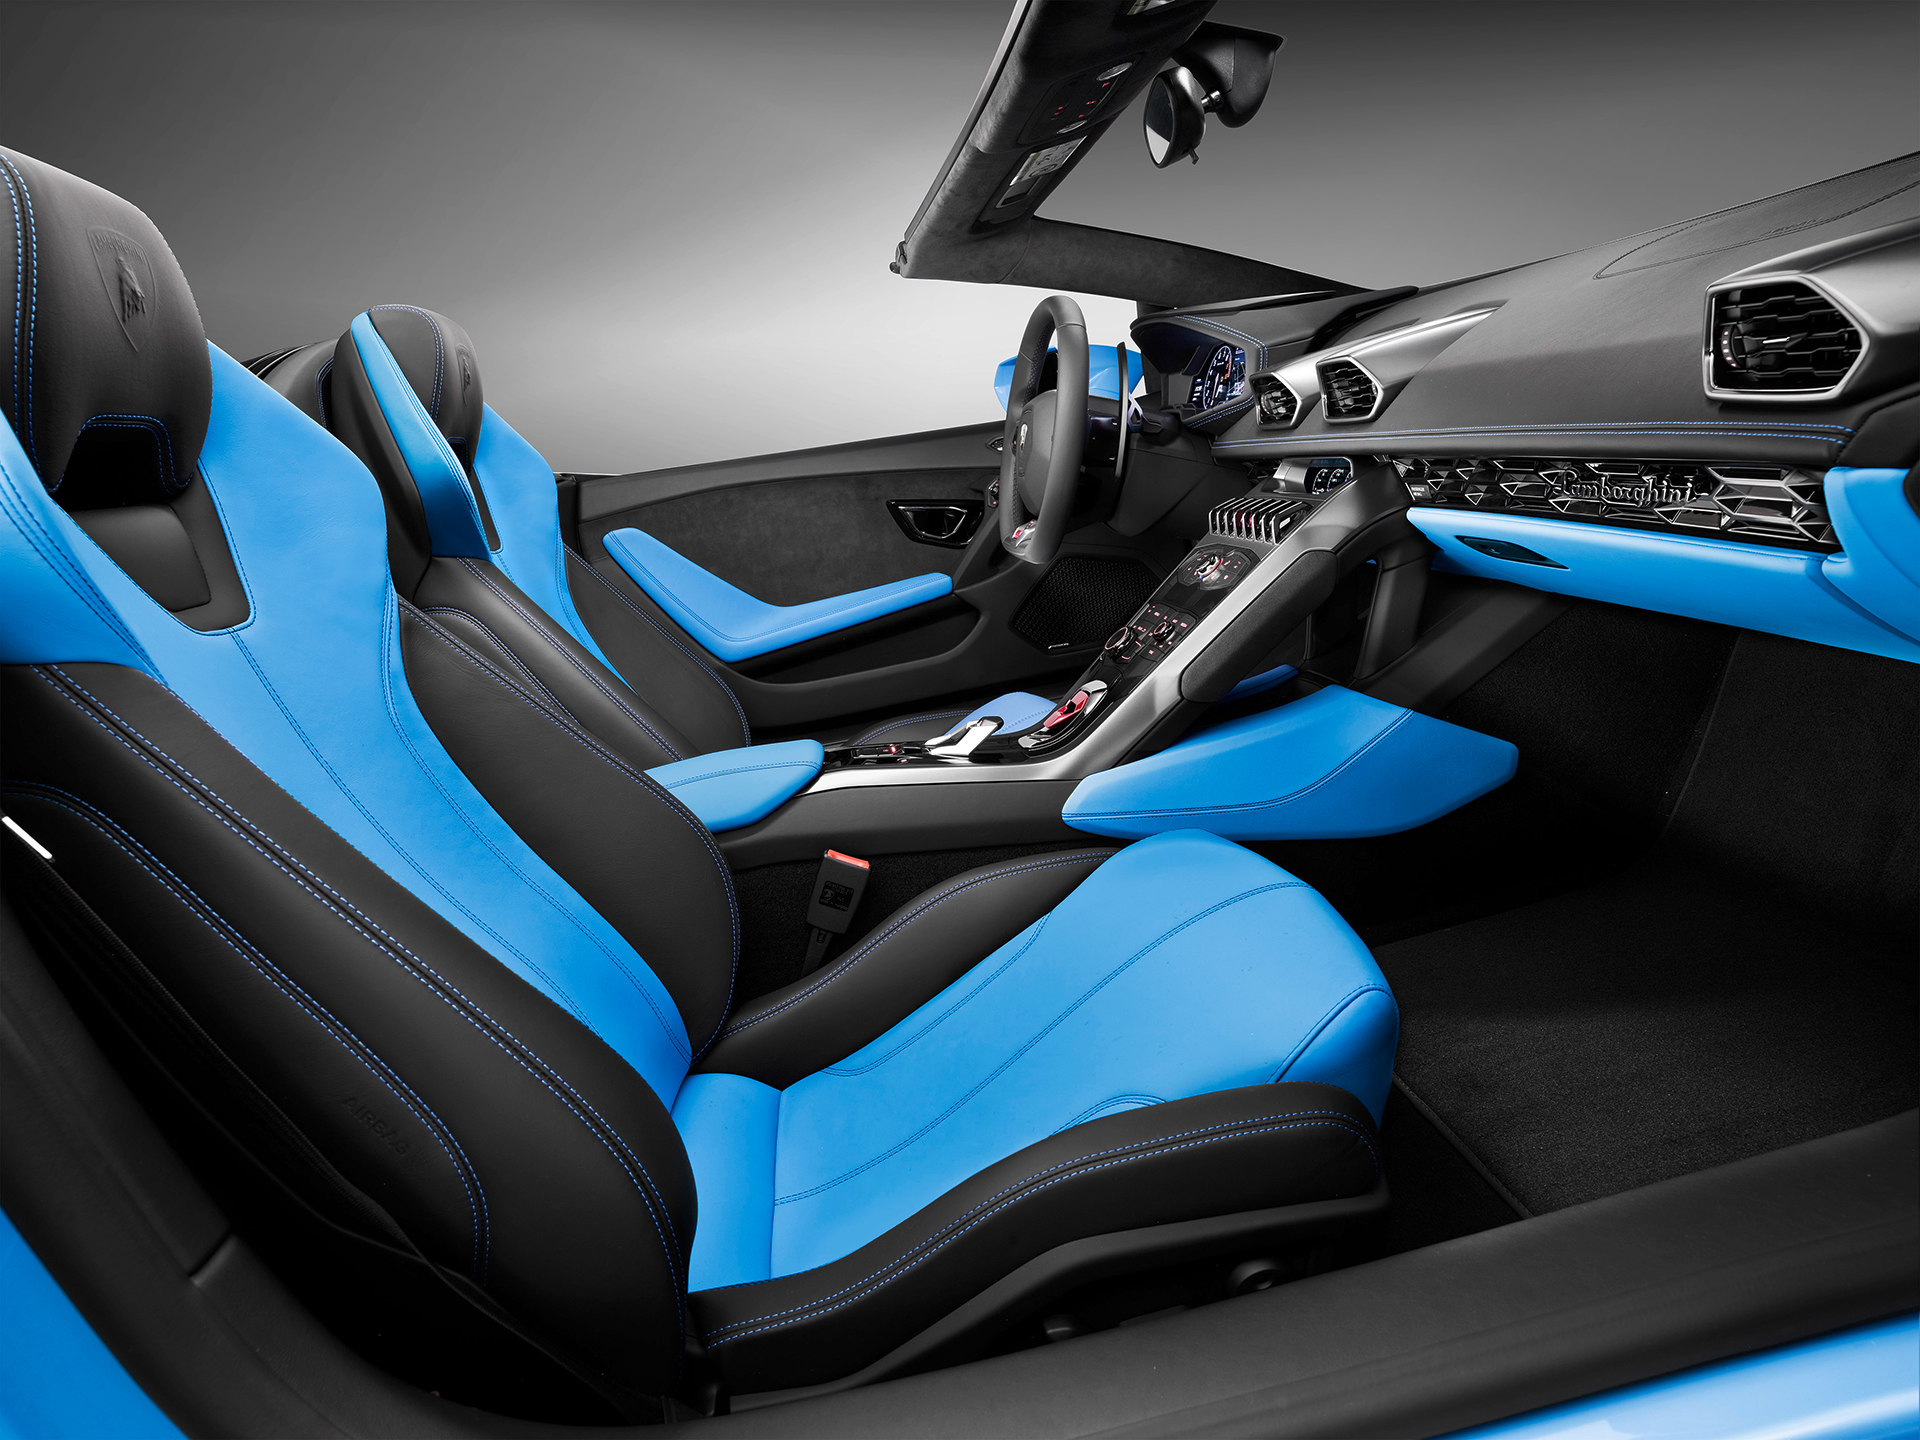 lamborghini hurac n spyder v10 atmo ciel ouvert. Black Bedroom Furniture Sets. Home Design Ideas